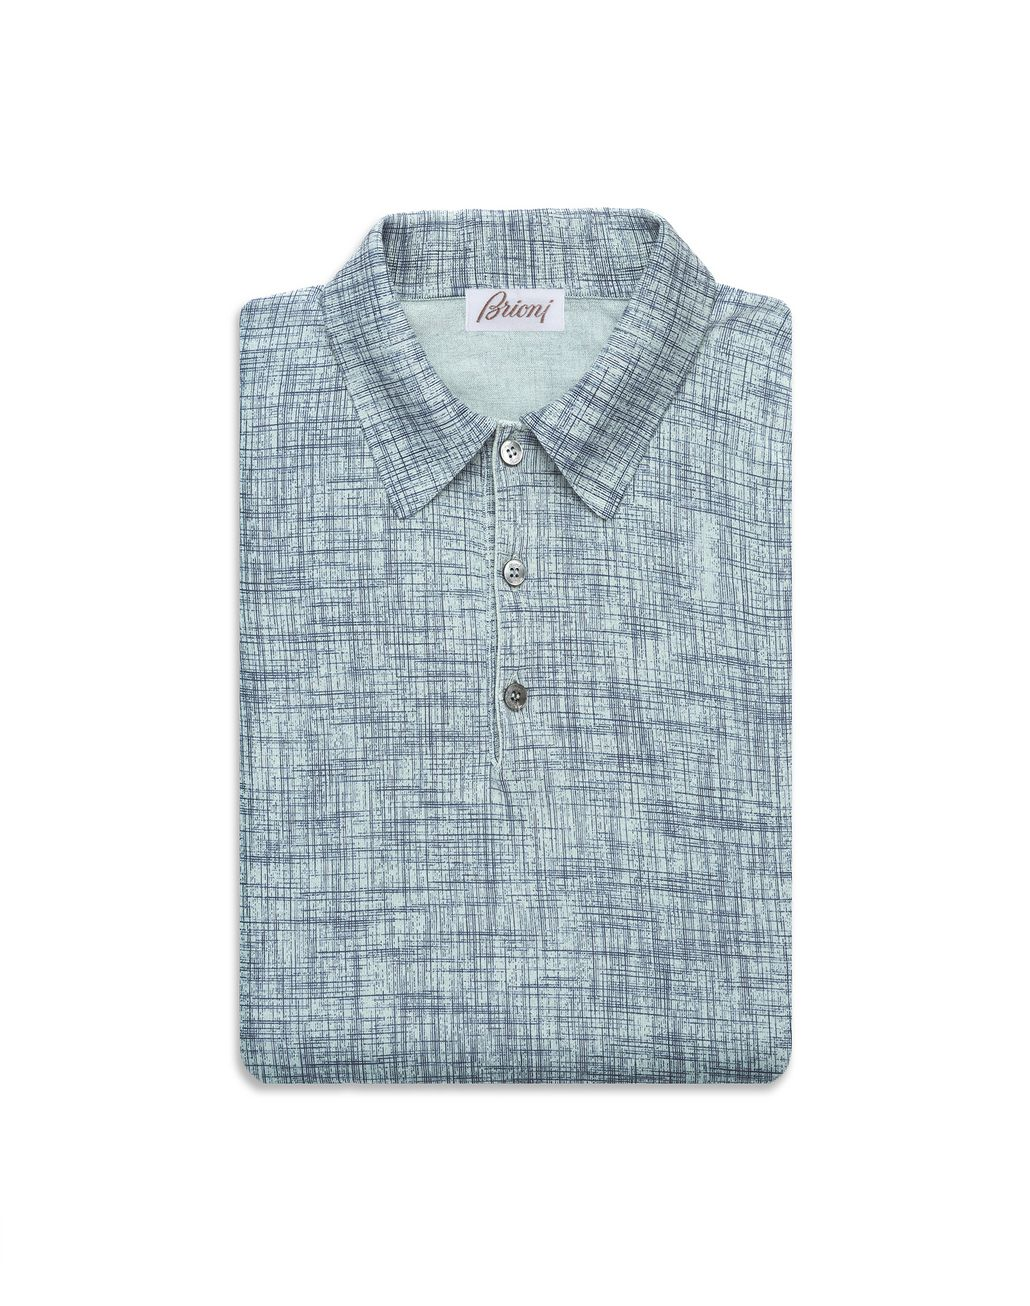 BRIONI Bluette Printed Cotton and Silk Polo Shirt   T-Shirts & Polos Man e